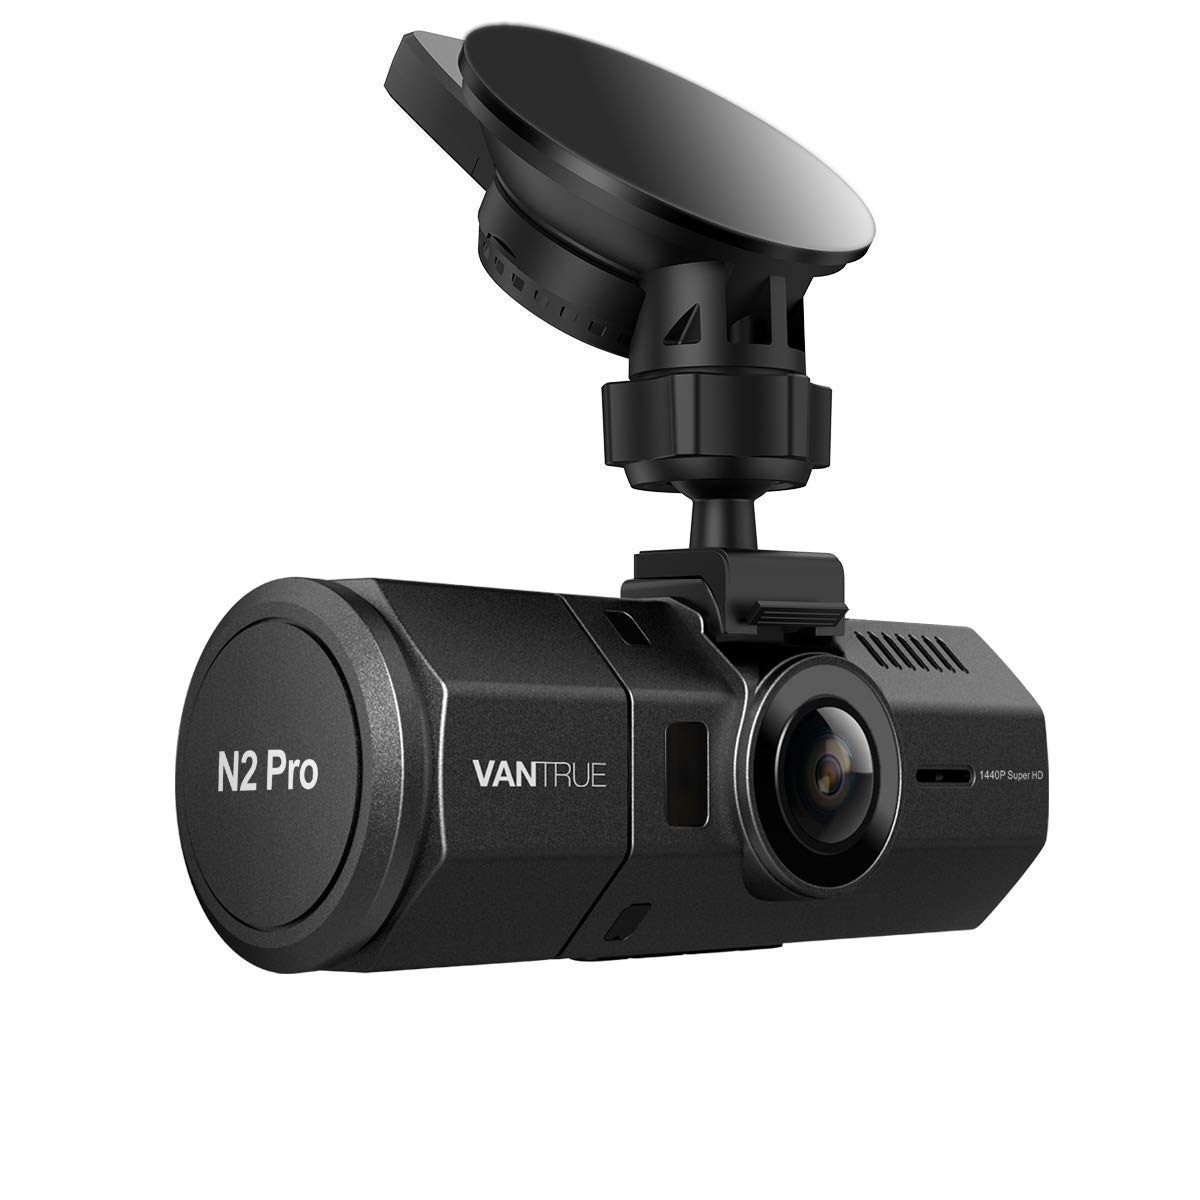 2.5K 1440P Single Front Support 256GB Max Vantrue N2 Pro Dual Dash Cam Infrared Night Vision Dual 1080P Front and Rear Dash Camera for Cars G-Sensor 1.5 310/° Car Camera w//Sony Sensor Parking Mode